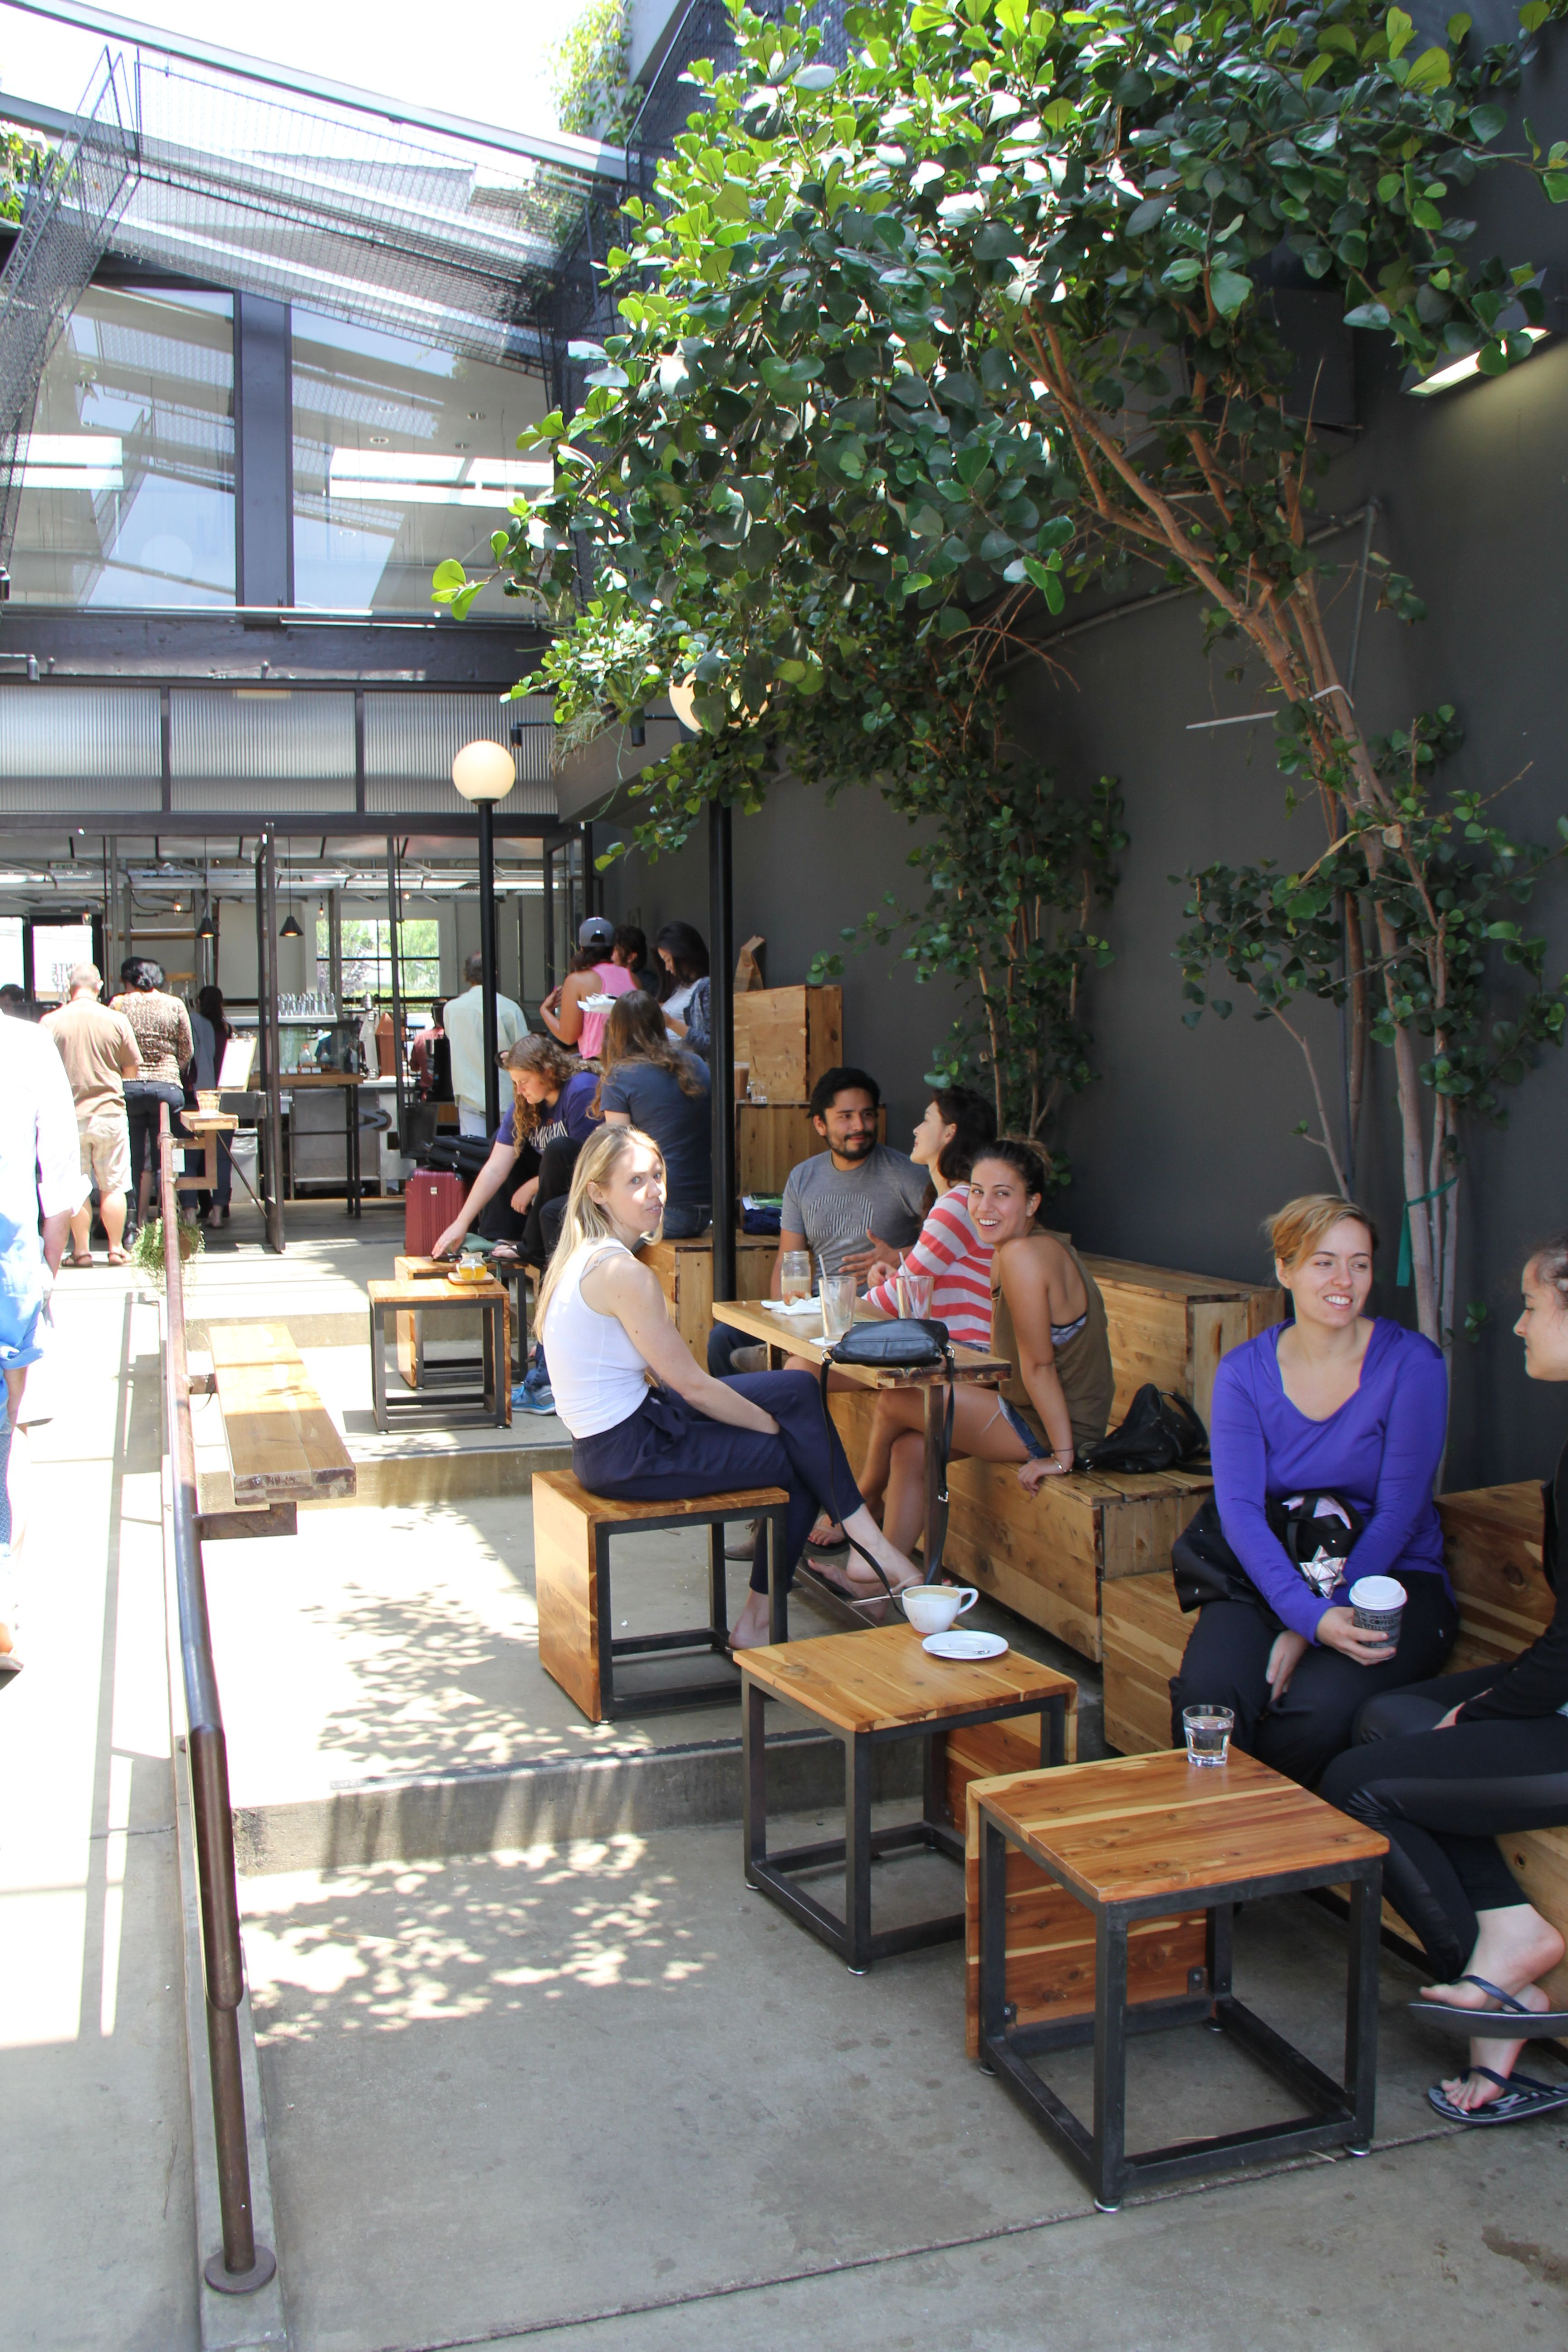 Asien Garten Shop Outdoor Coffee Shop Abbot Kinney Dining With Nature